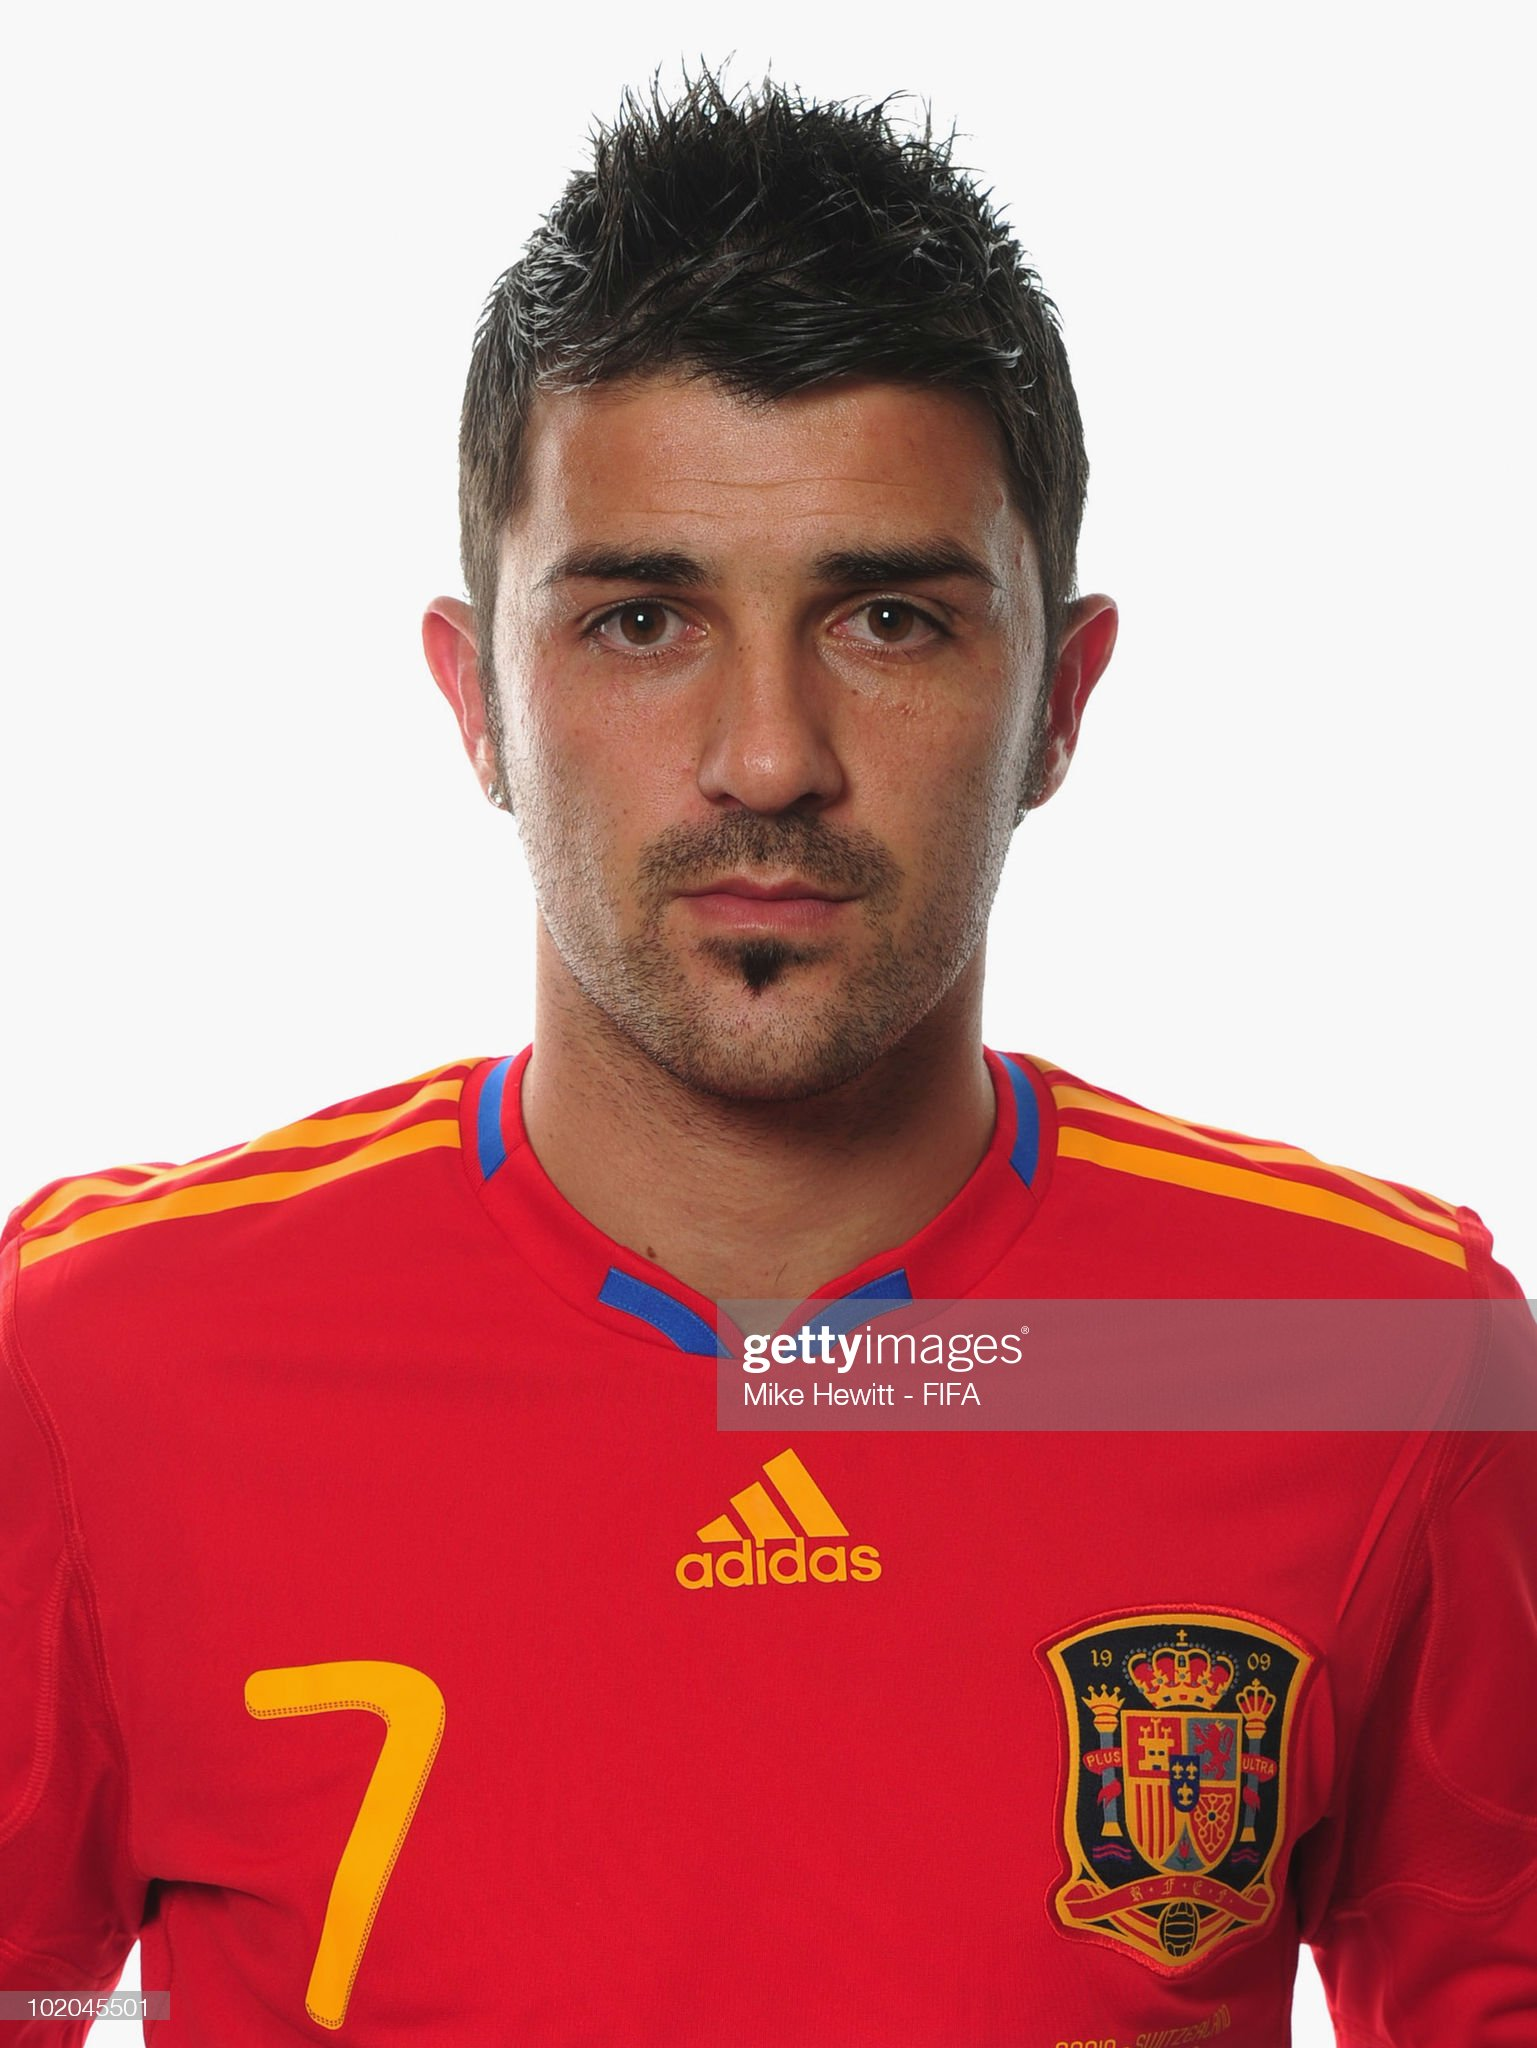 ¿Cuánto mide David Villa? - Altura - Real height David-villa-of-spain-poses-during-the-official-fifa-world-cup-2010-picture-id102045501?s=2048x2048